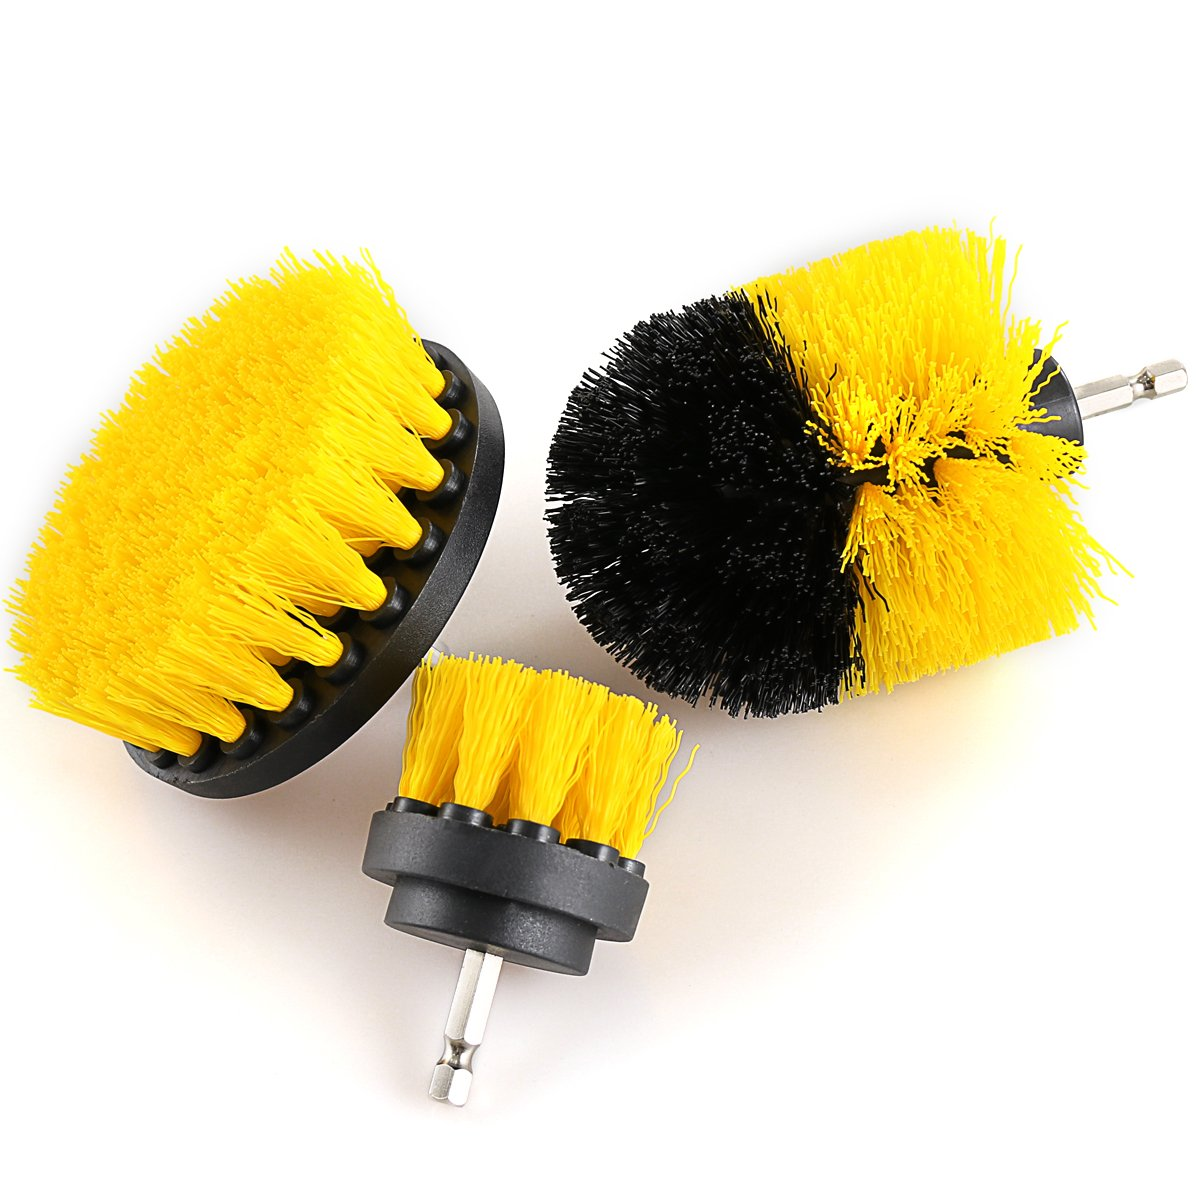 Drill Brush Attachment Kits, 3 Pieces Cleaning Power Scrubber Brush Heads for Cordless/Corded Drills, All Purpose Bathroom Surface, Grout, Tub, Shower, Kitchen, Drill Is Not Included (Medium-Yellow) by HENGQIANG (Image #7)